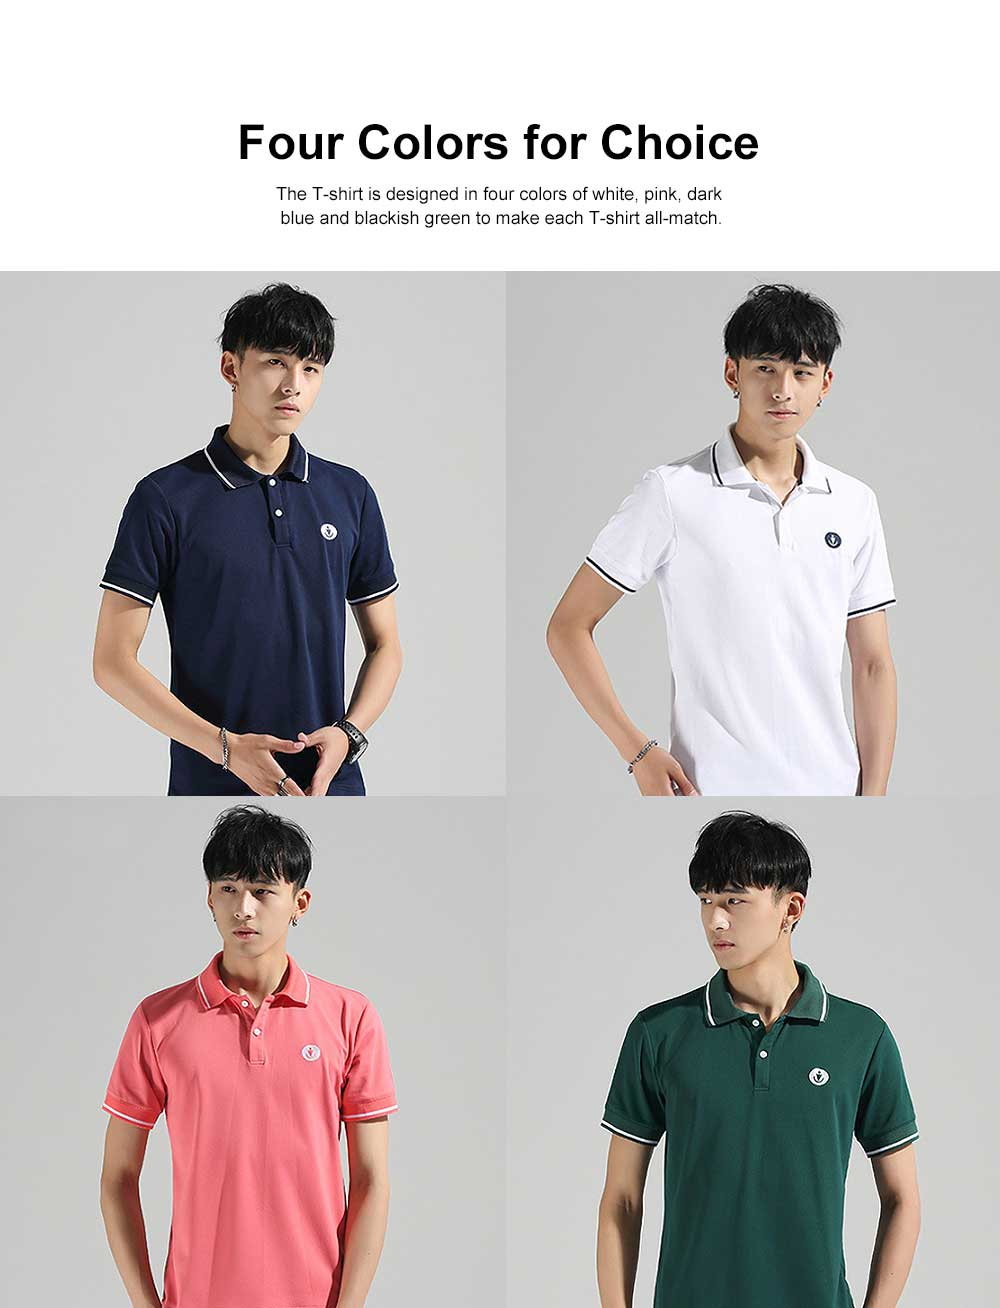 Embroidery T-shirt for Male Daily Wear 2019 Summer, Casually Turn-down Collar Top for Students, Youth Man All-match Polo Shirt 2